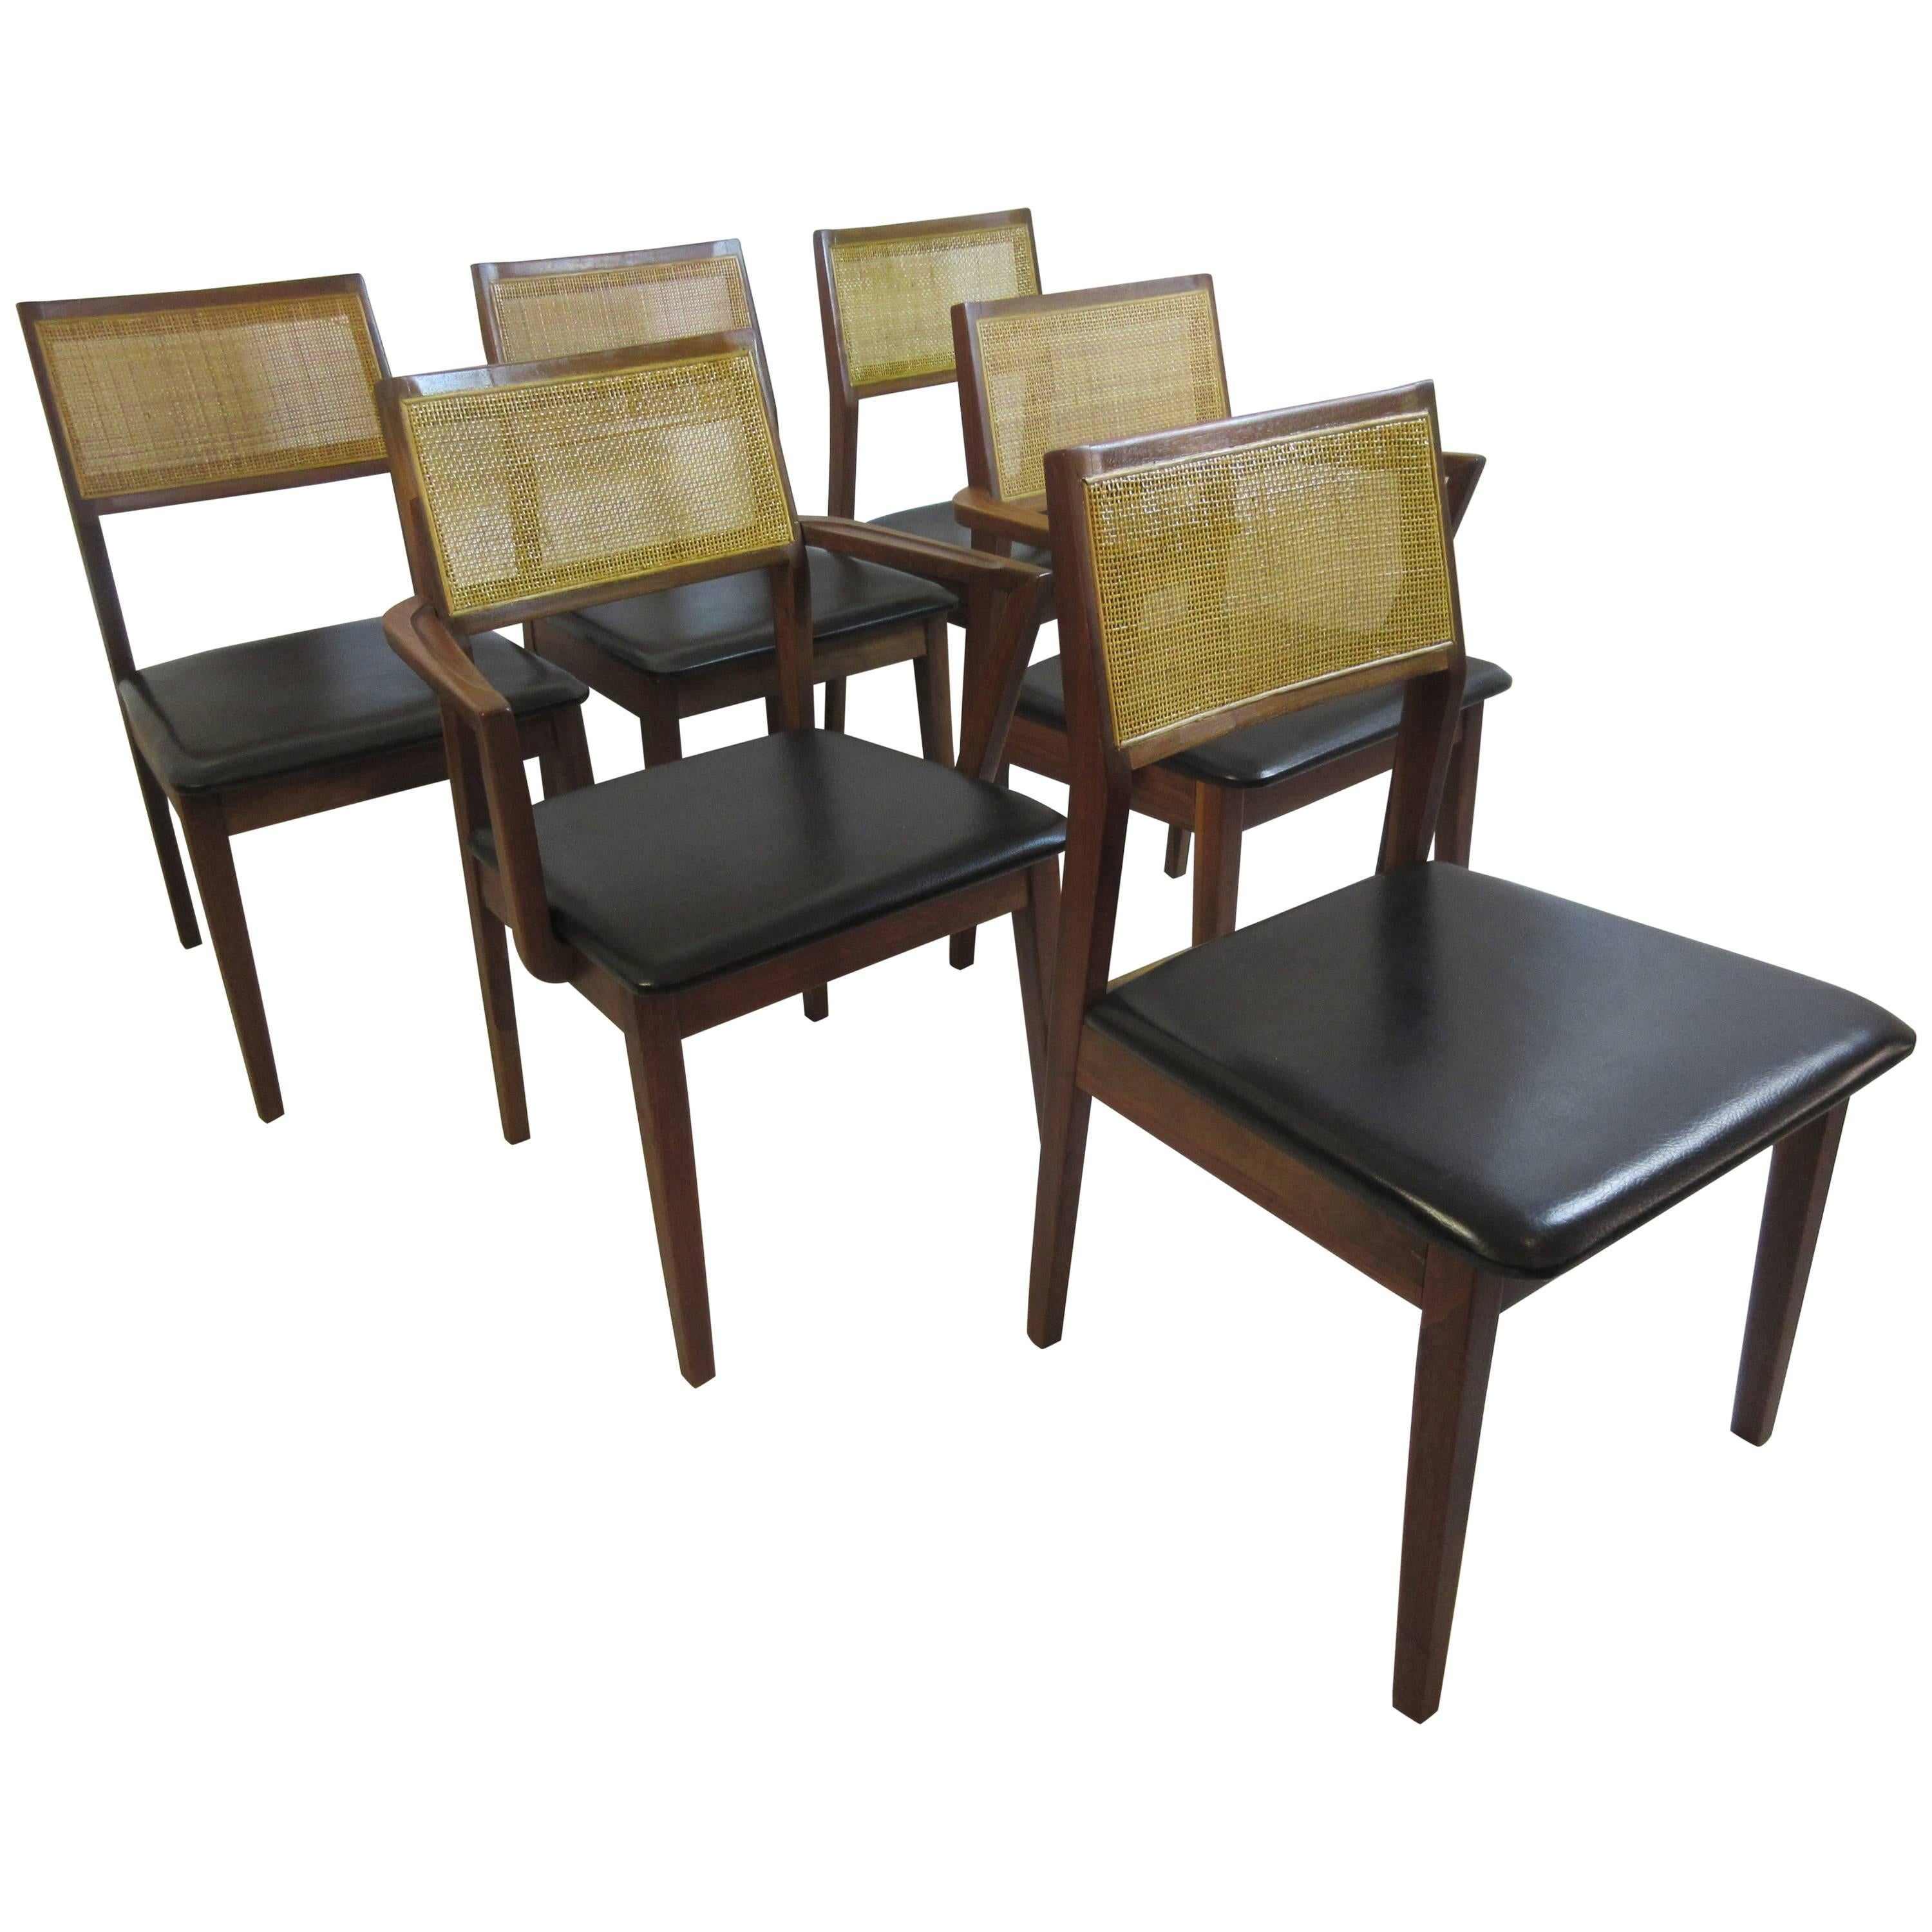 Founders For Thomasville Walnut Jack Cartwright Dining Chairs